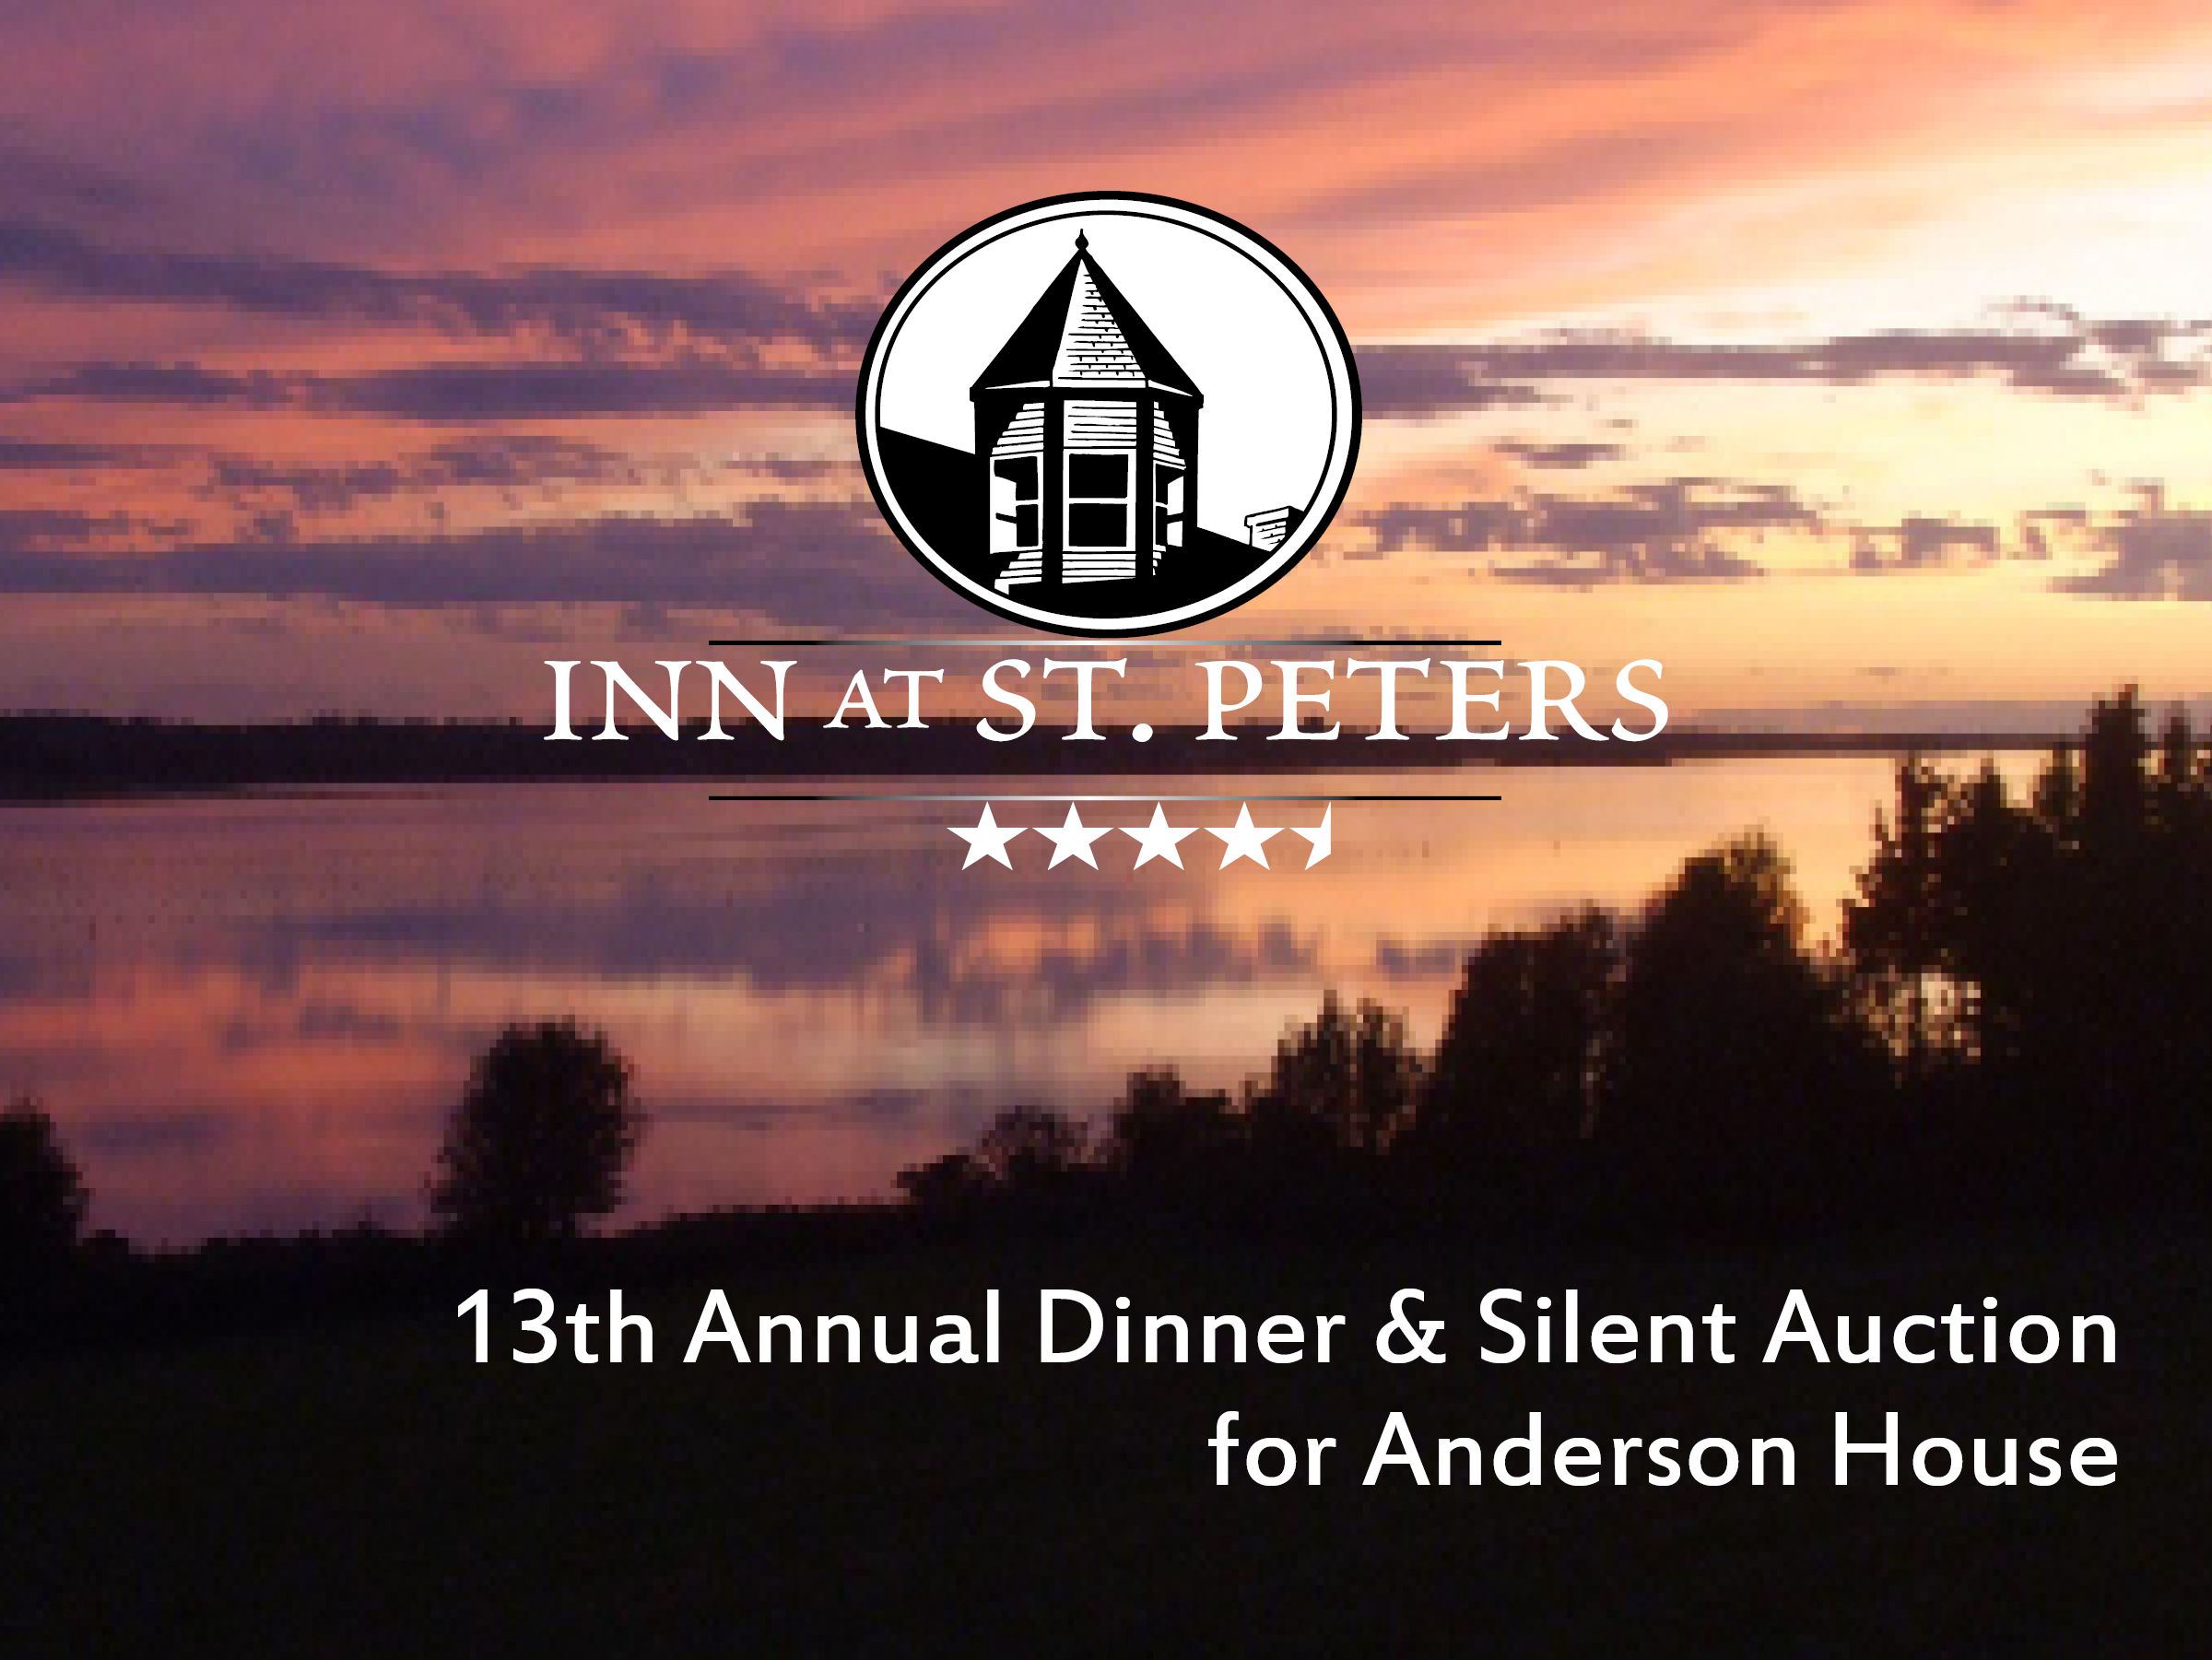 Inn at St. Peters 13th Annual Dinner and Silent Auction